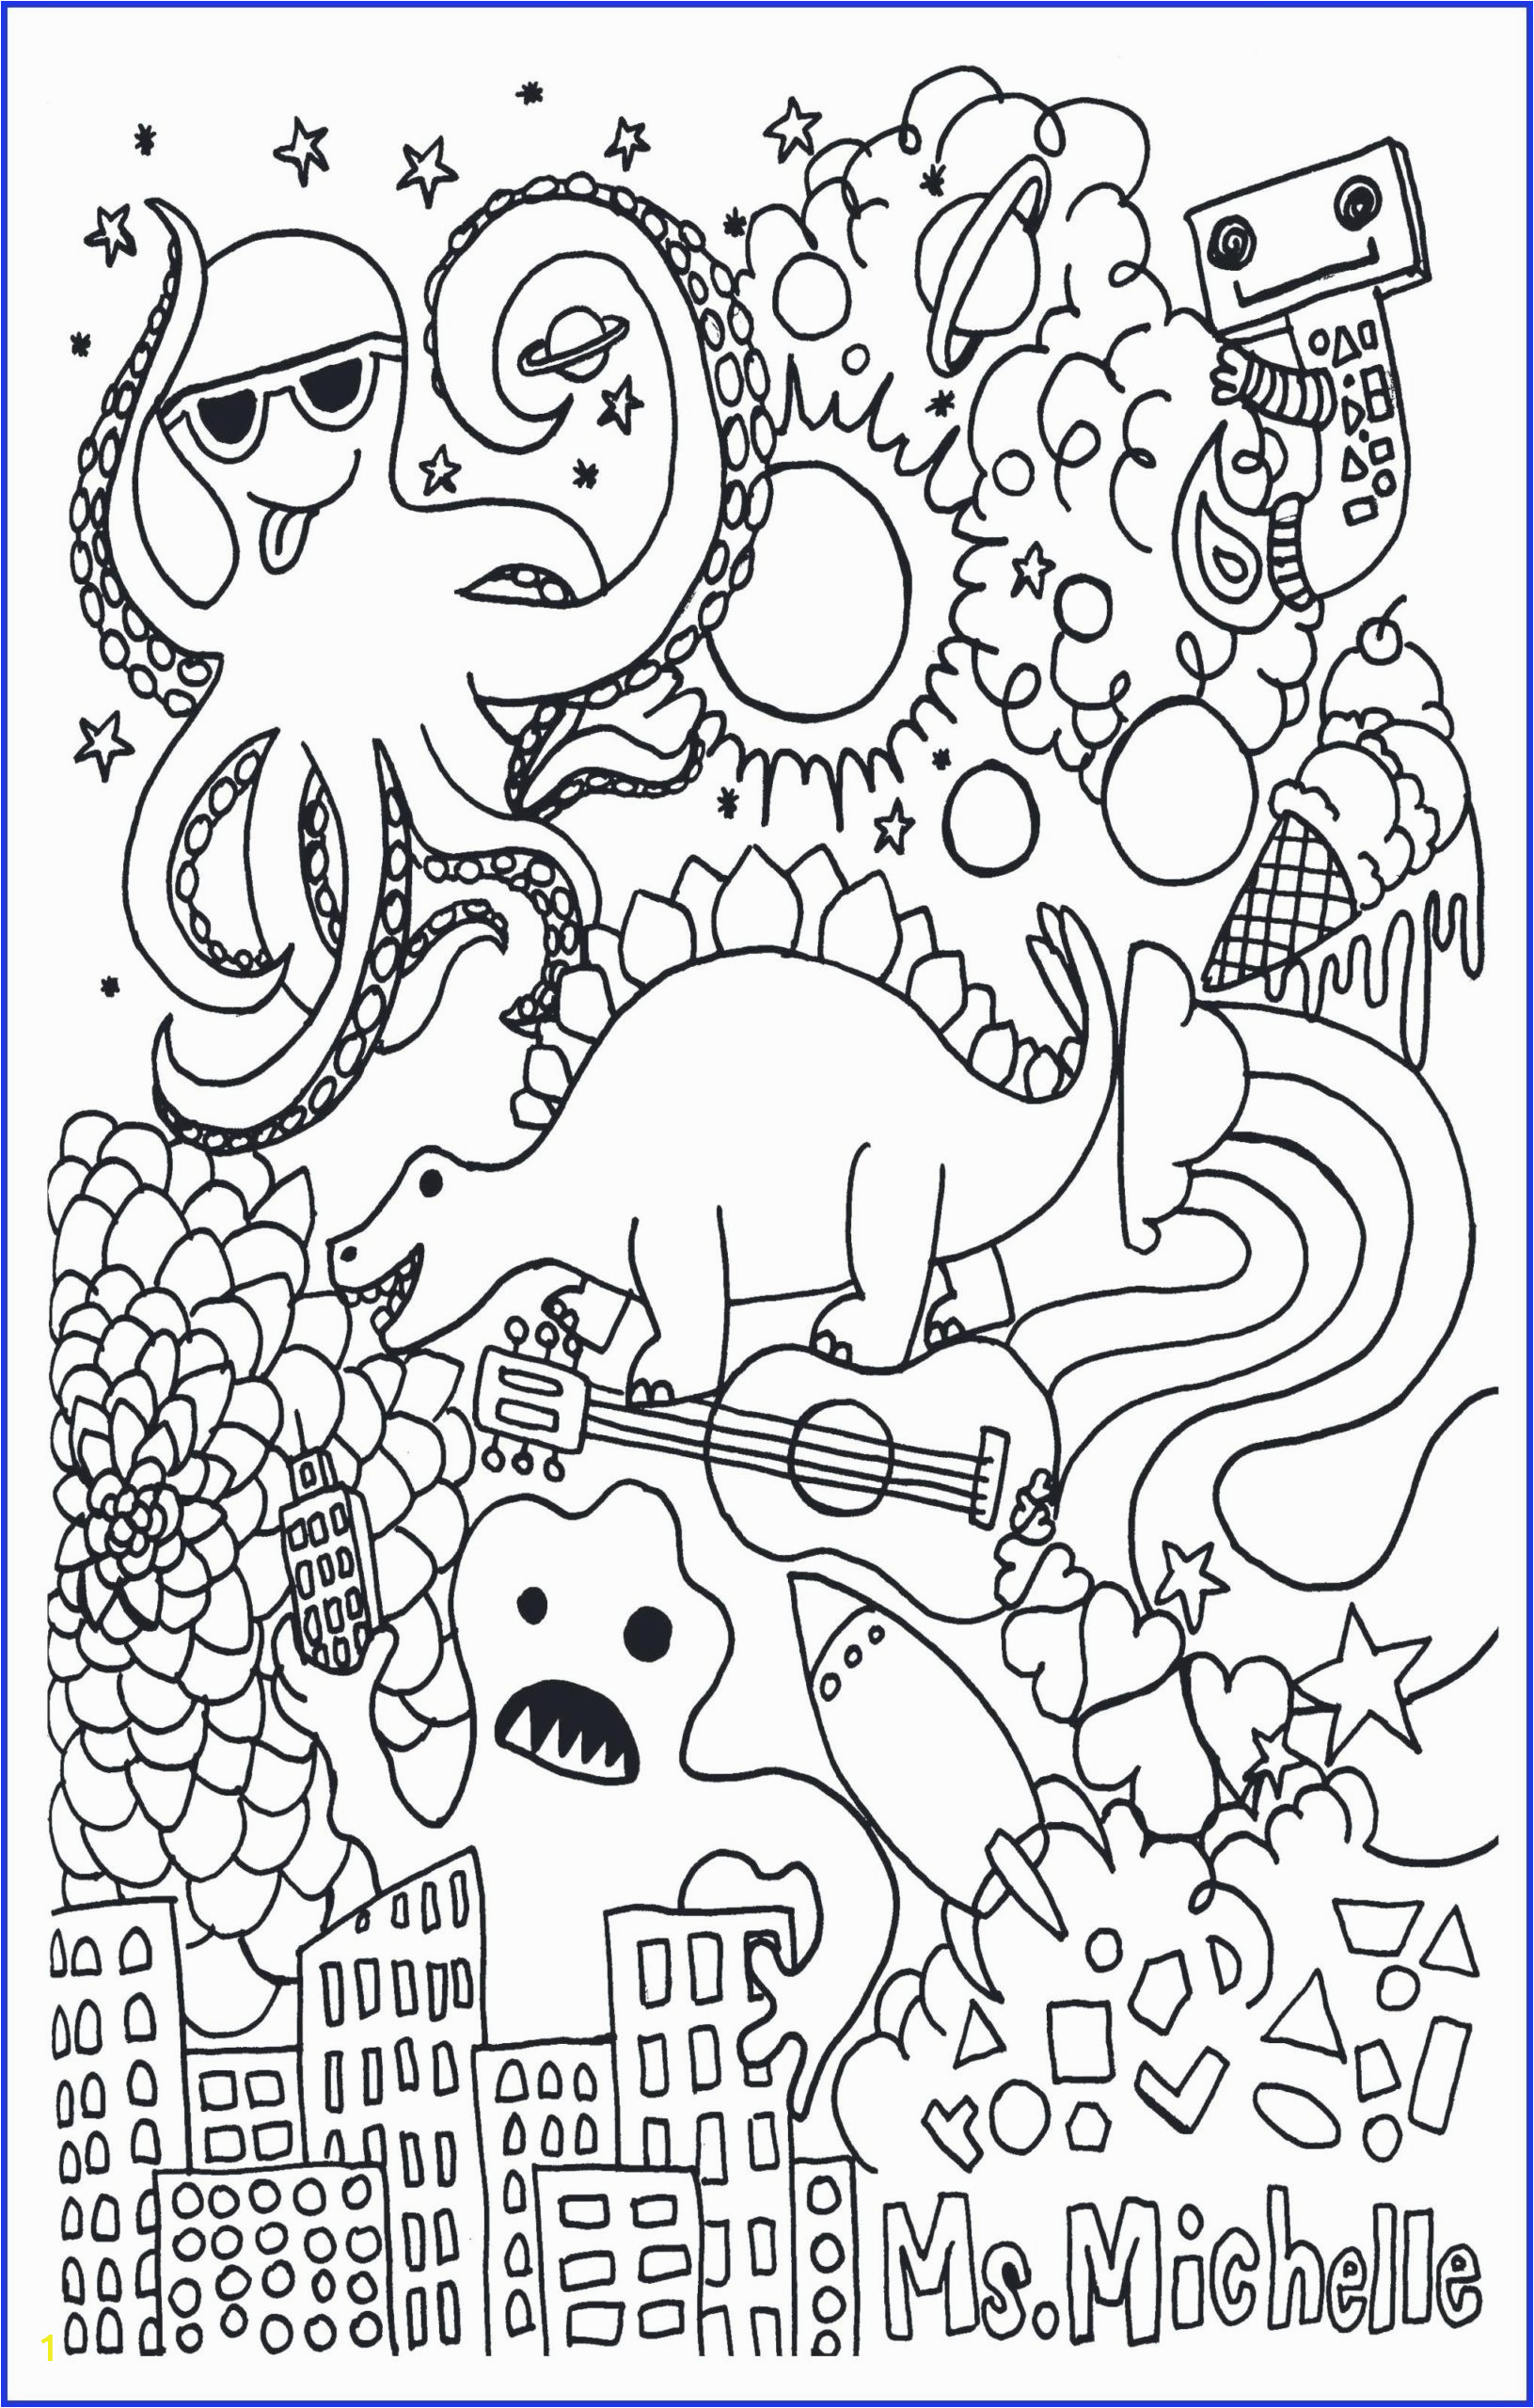 summer coloring pages for kids color puzzles printable sheets mrpage co printables camp vacation free season preschoolers adults beach colouring in scaled